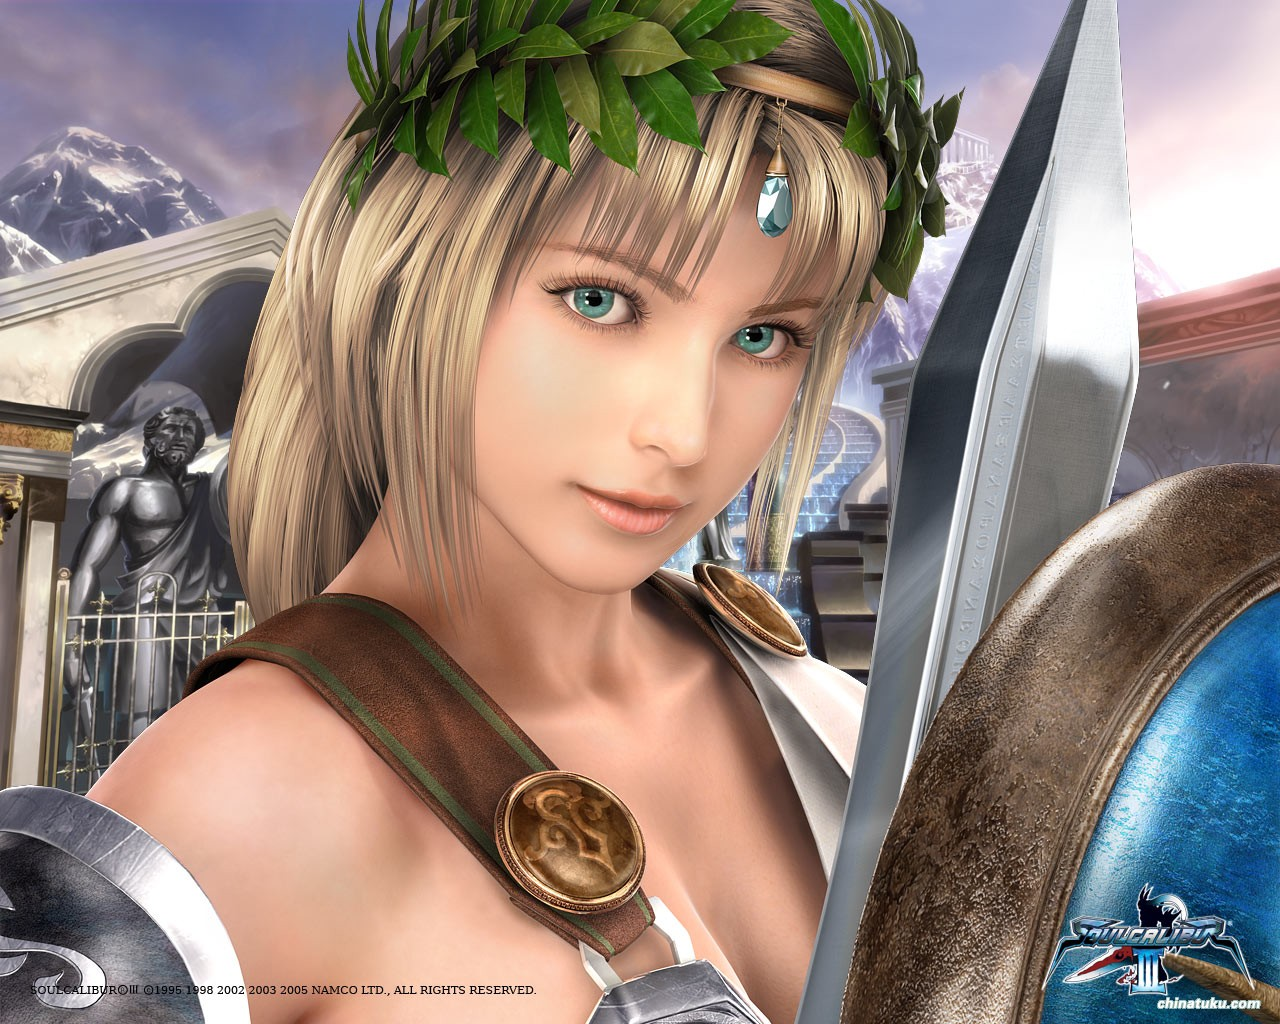 soulcalibur - Click here to view Full Image